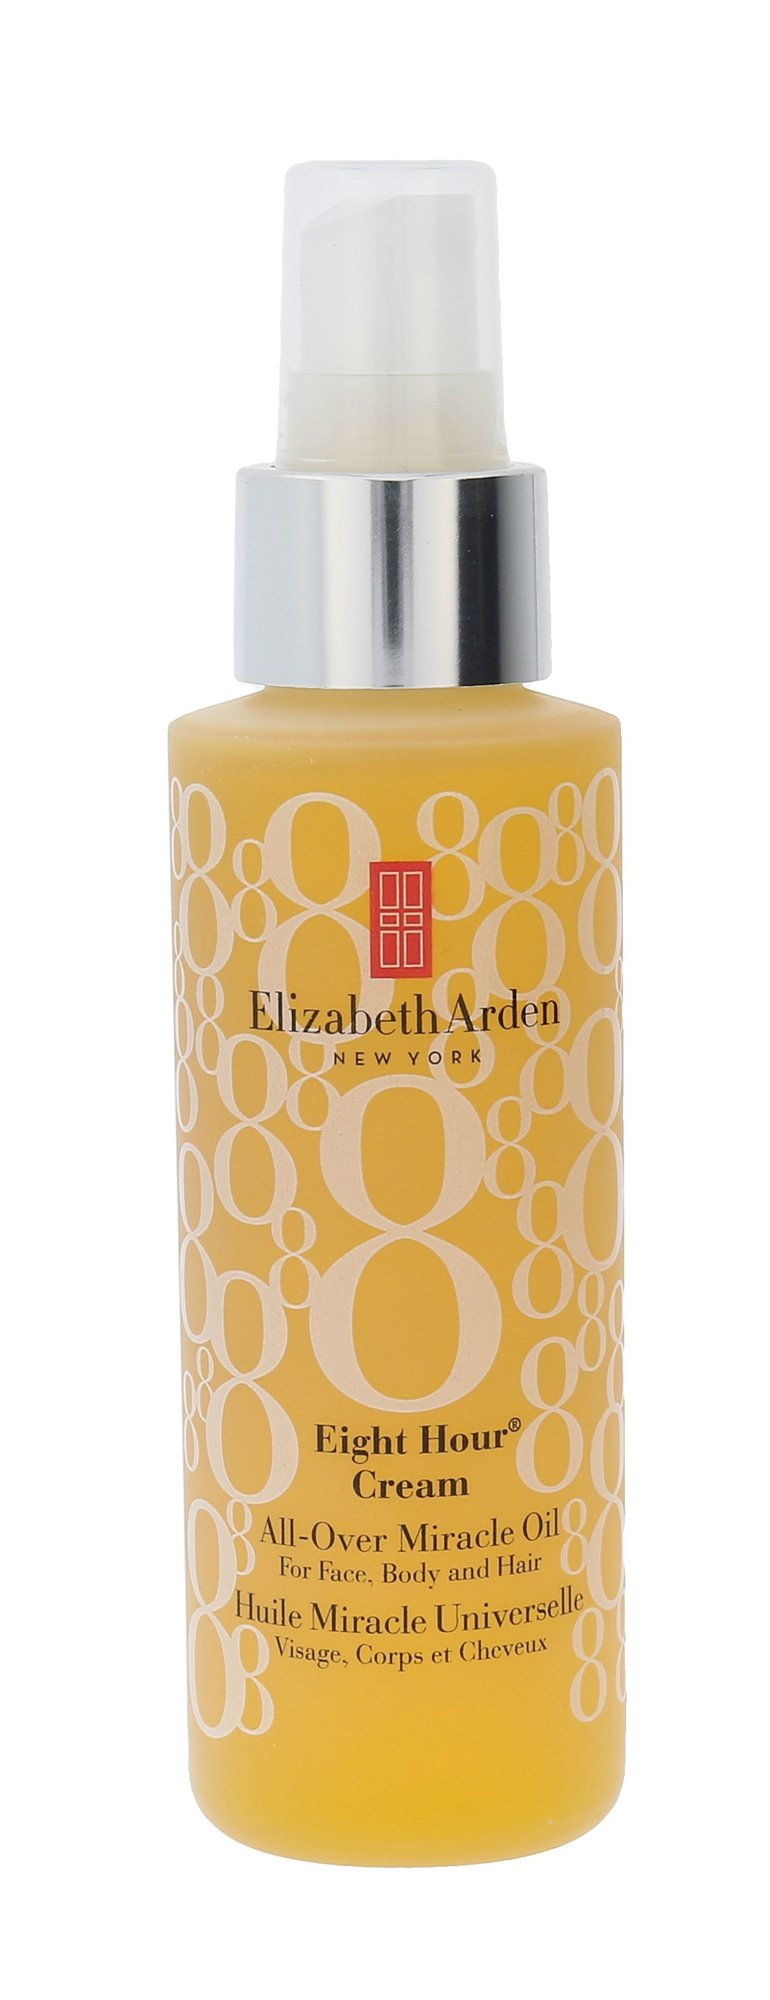 Elizabeth Arden Eight Hour Cream Cosmetic 100ml